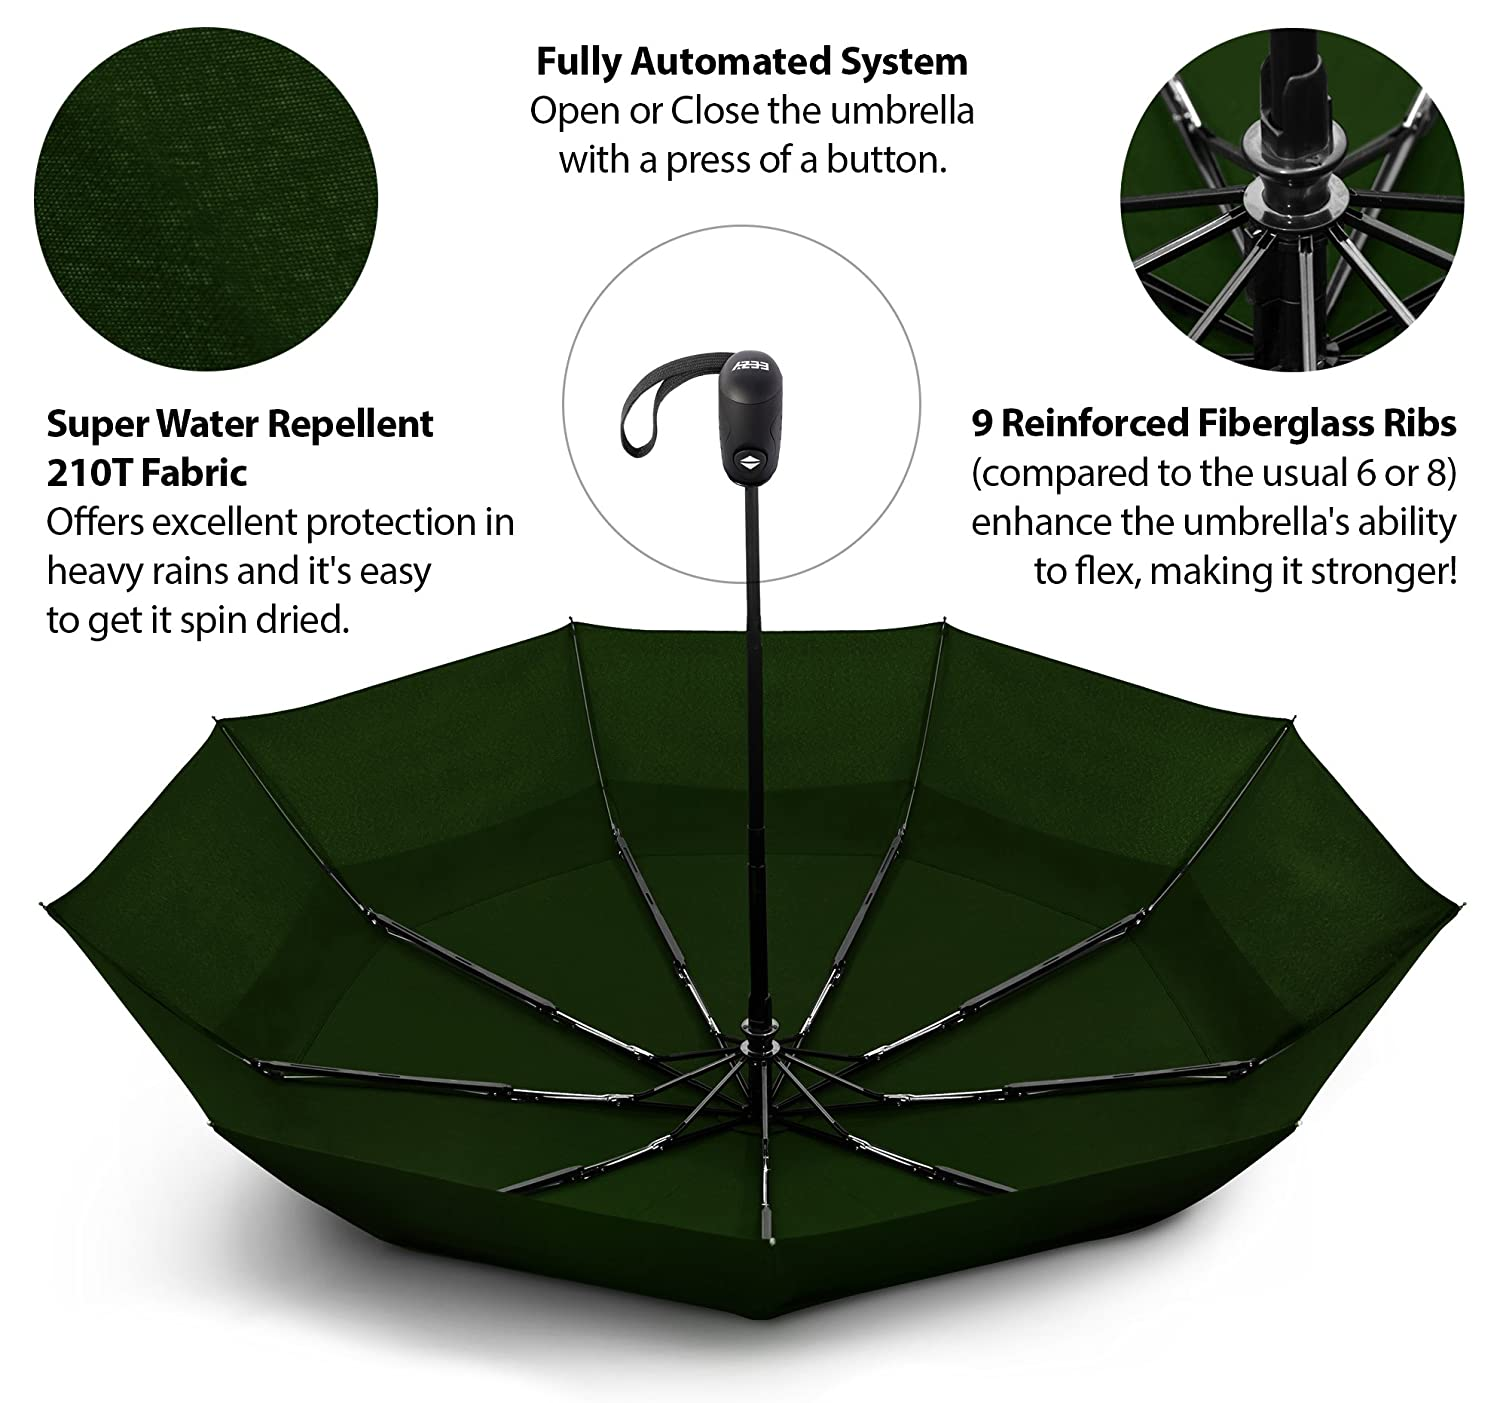 Auto Open Close Button for One Handed Operation Sturdy Portable and Lightweight for Easy Carry EEZ-Y Compact Travel Umbrella w//Windproof Double Canopy Construction